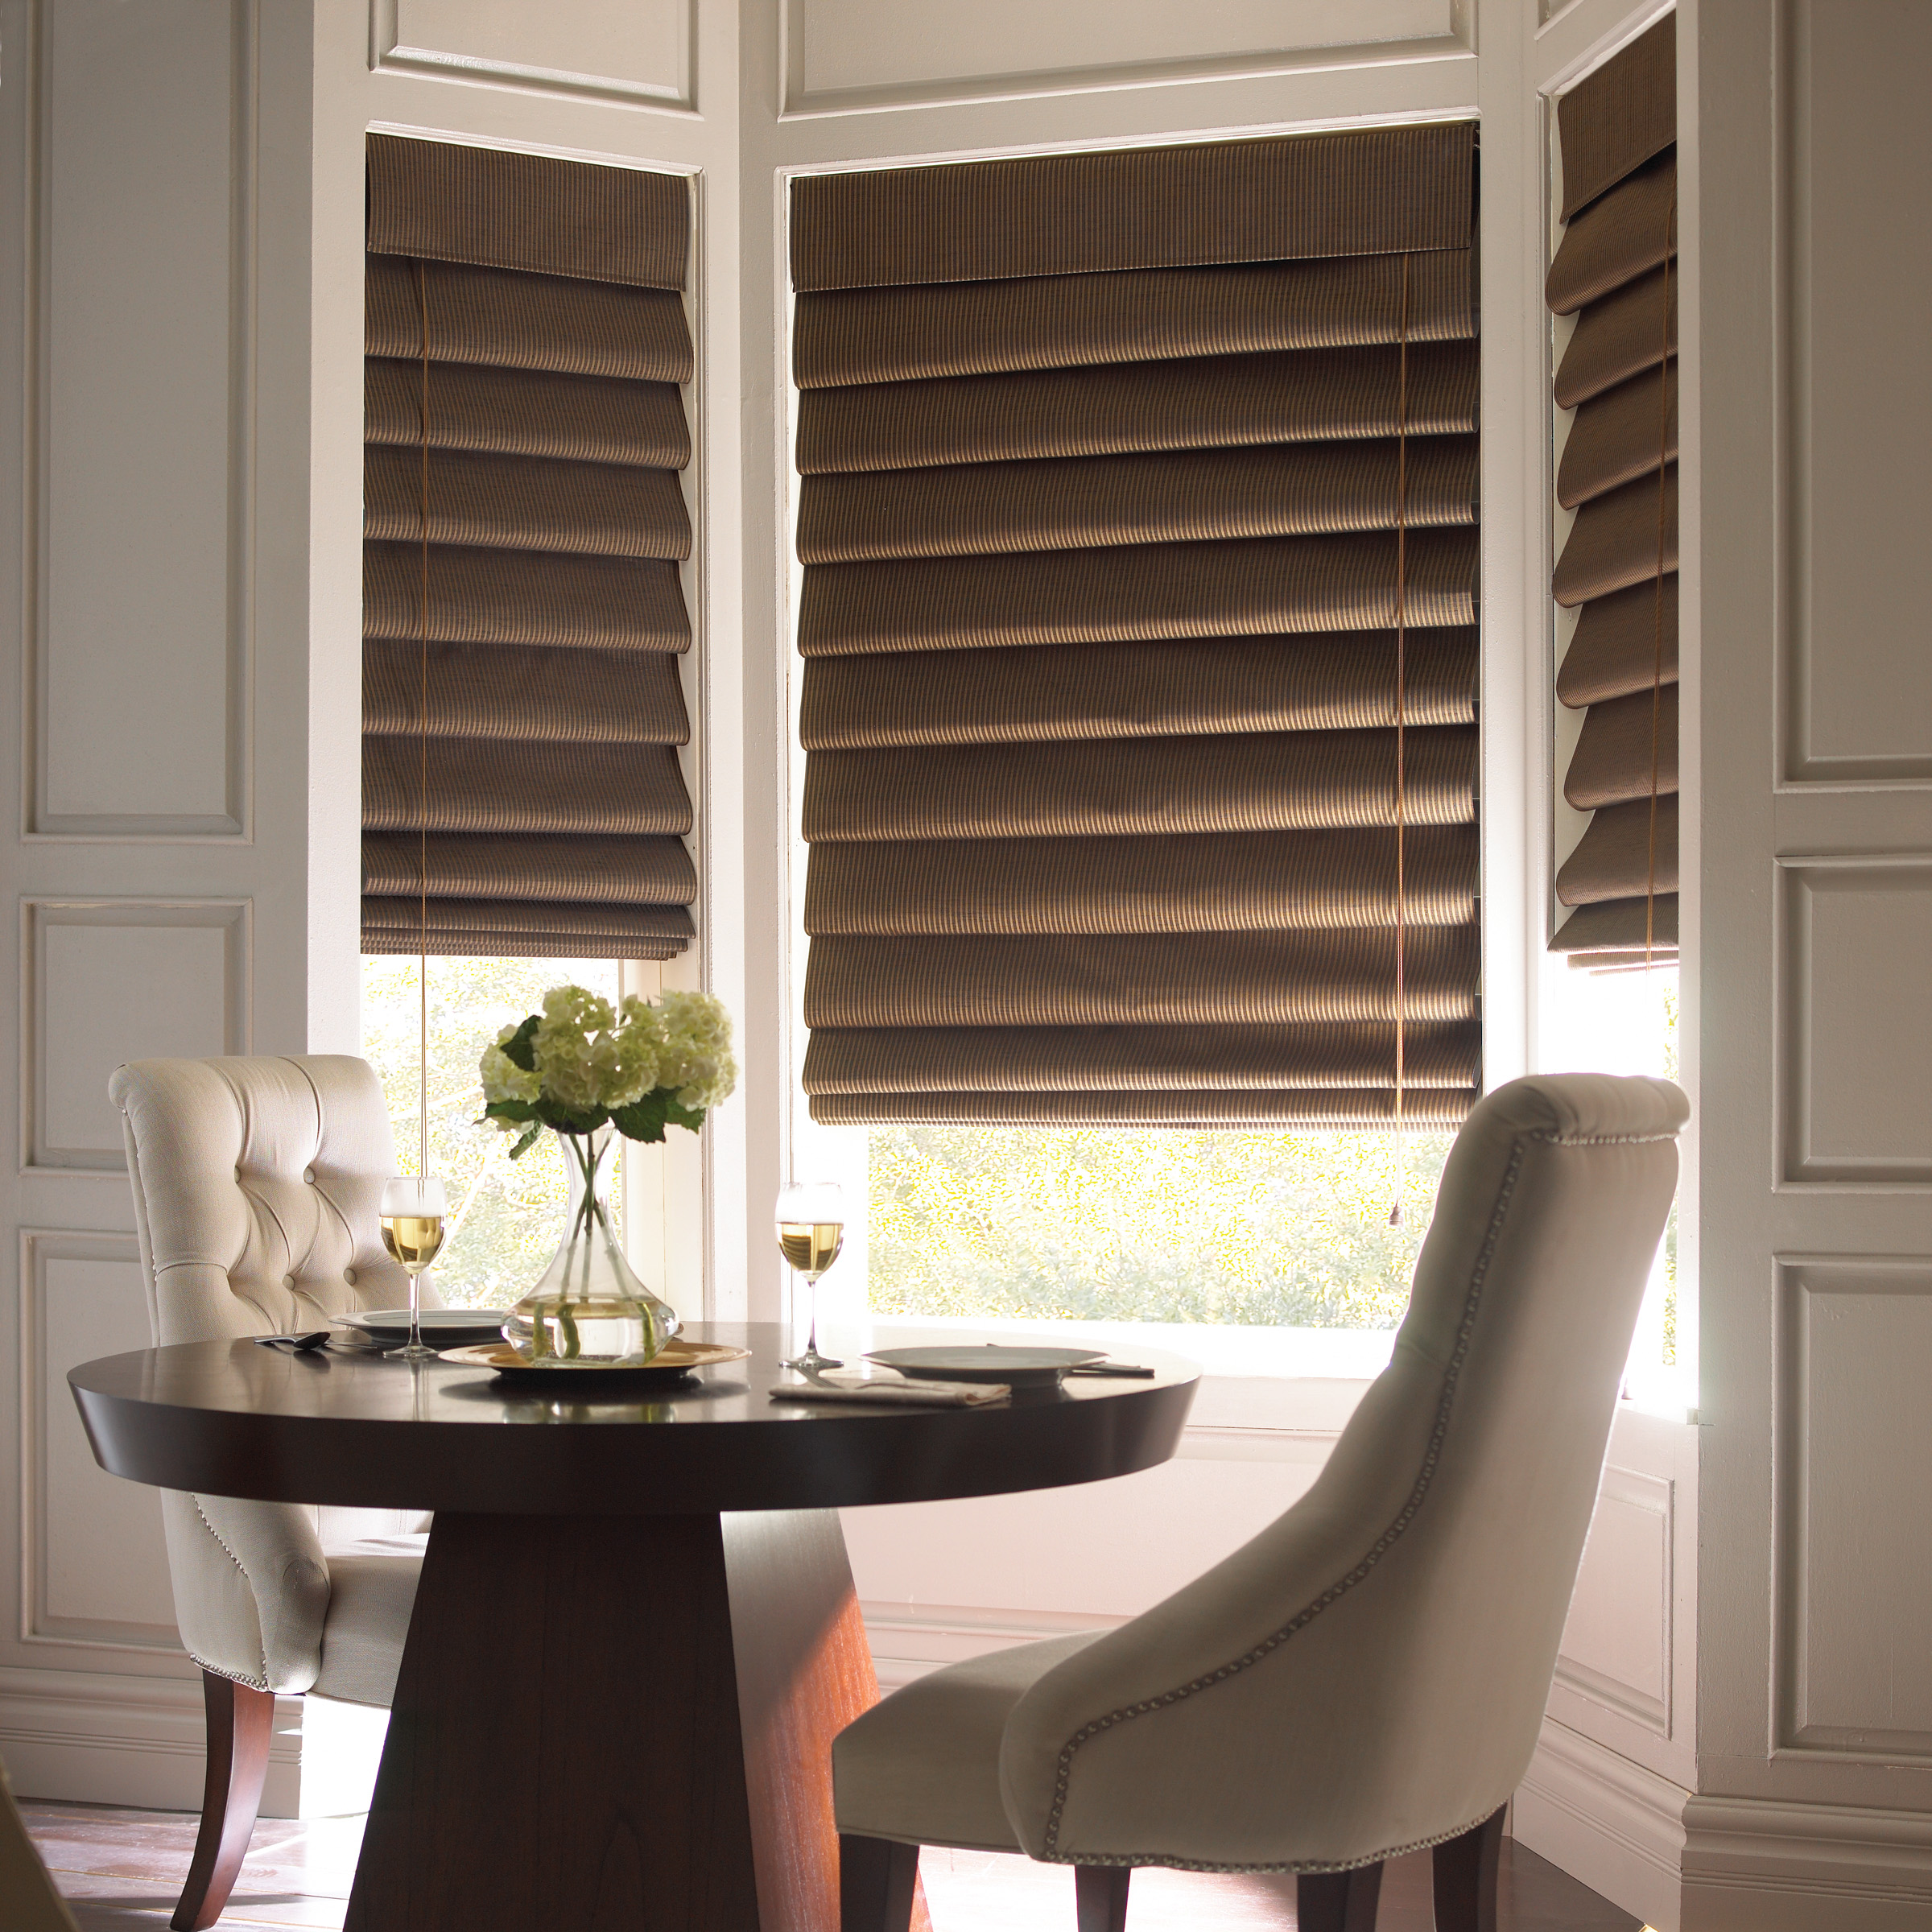 decoration-elegant-brown-bali-custom-tailored-looped-roman-shades-for-livingroom-decor-bali-roman-sh